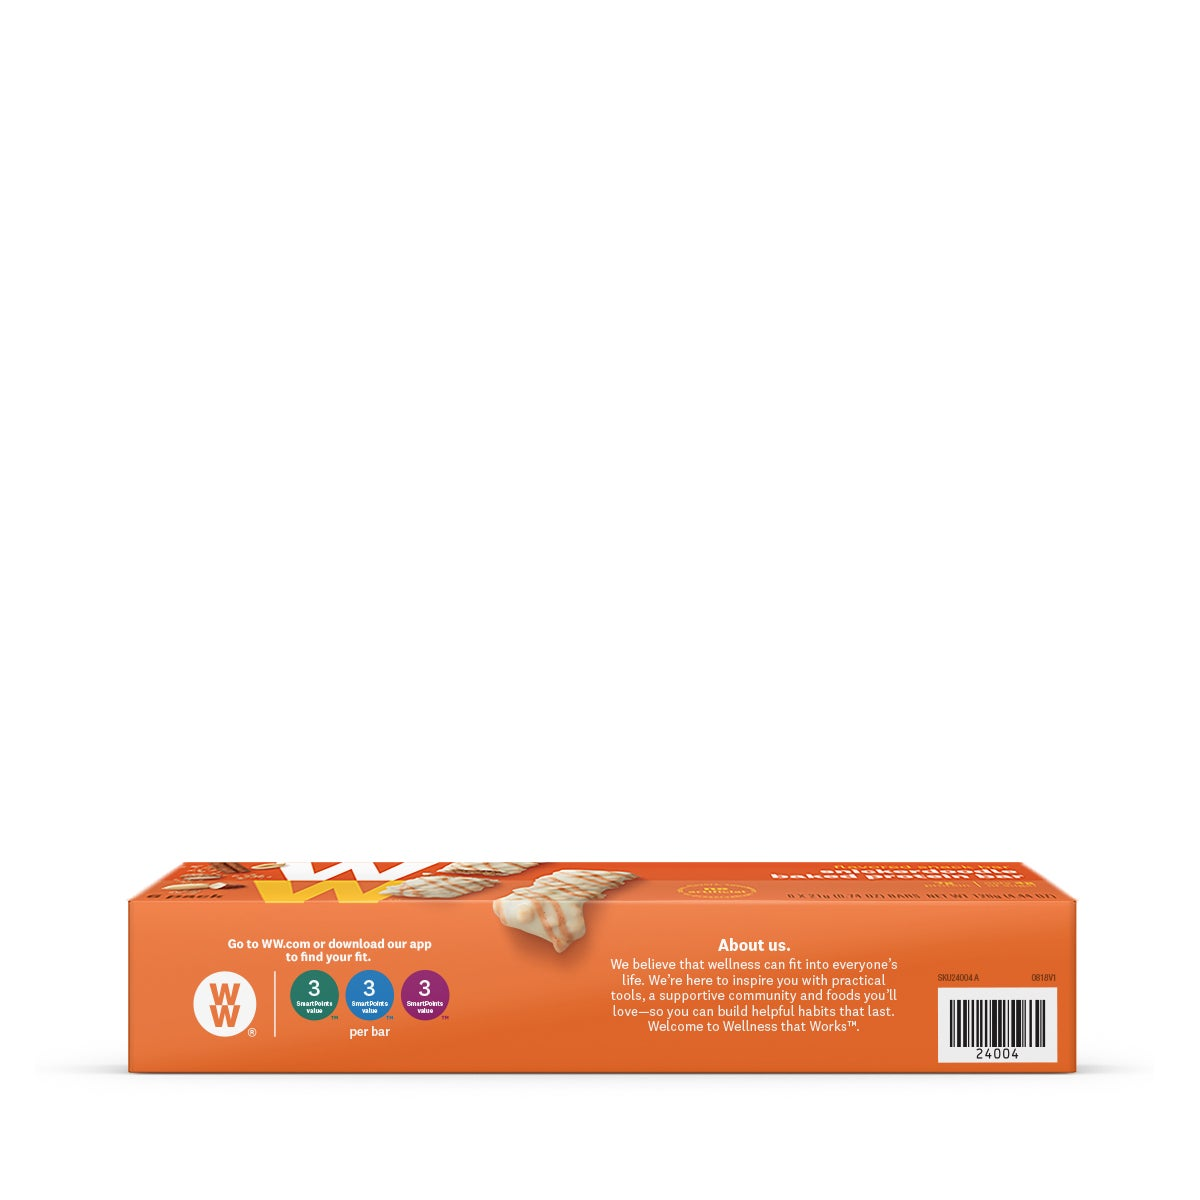 Snickerdoodle Baked Protein Bar - side of box